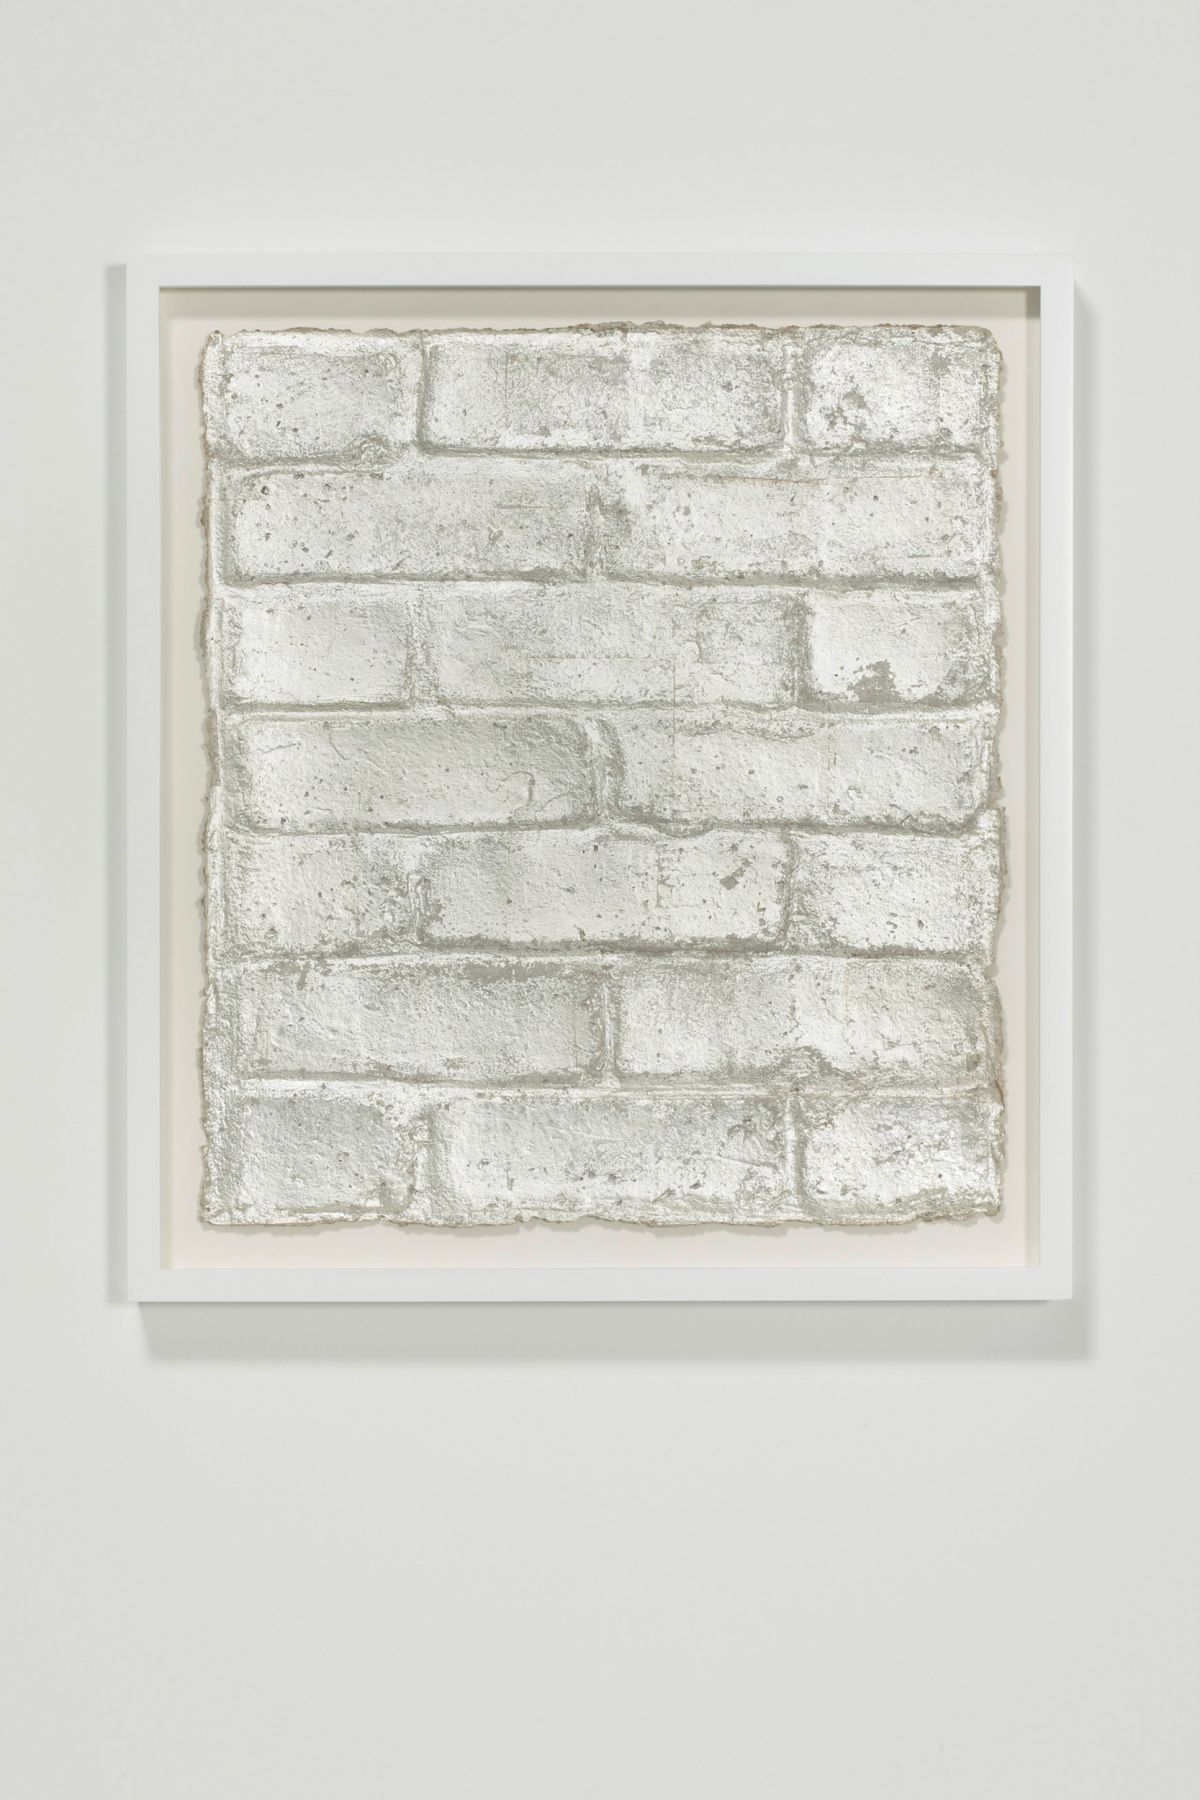 Rachel Whiteread, Untitled (Silver Leaf), 2015